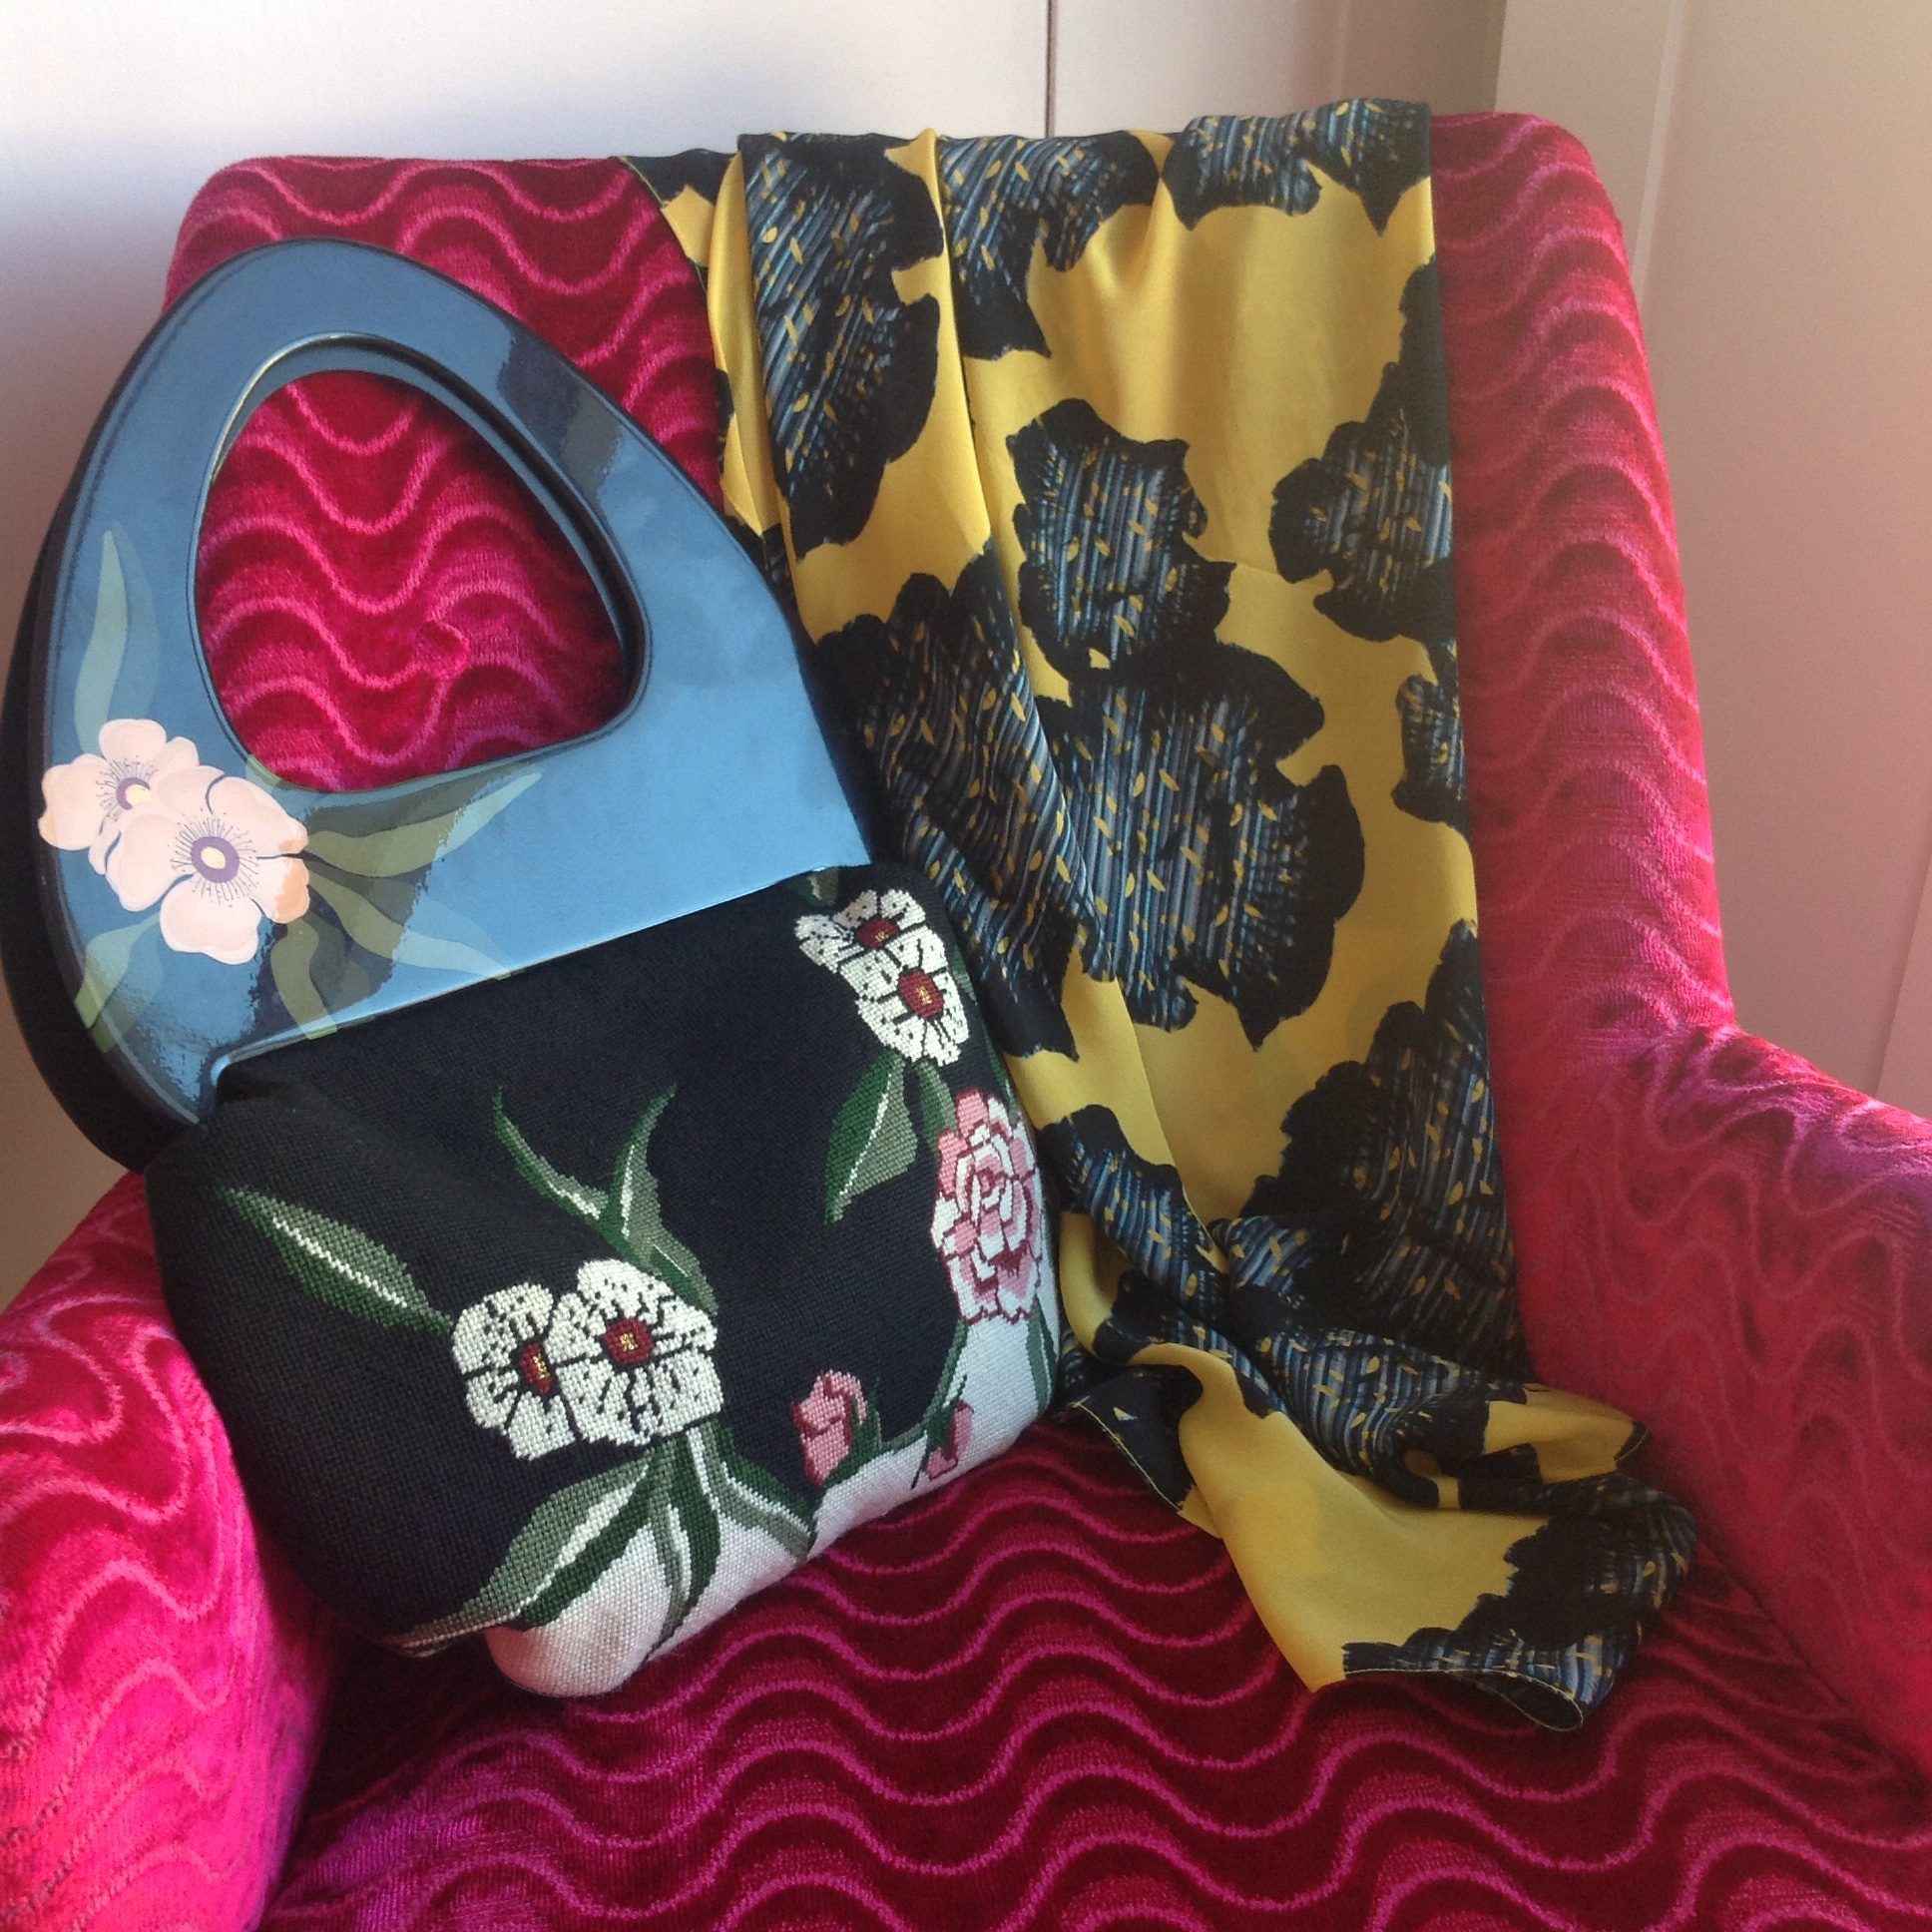 Moon Bag by Patricia Smith and Silk Scarf by designer Ellie Lines